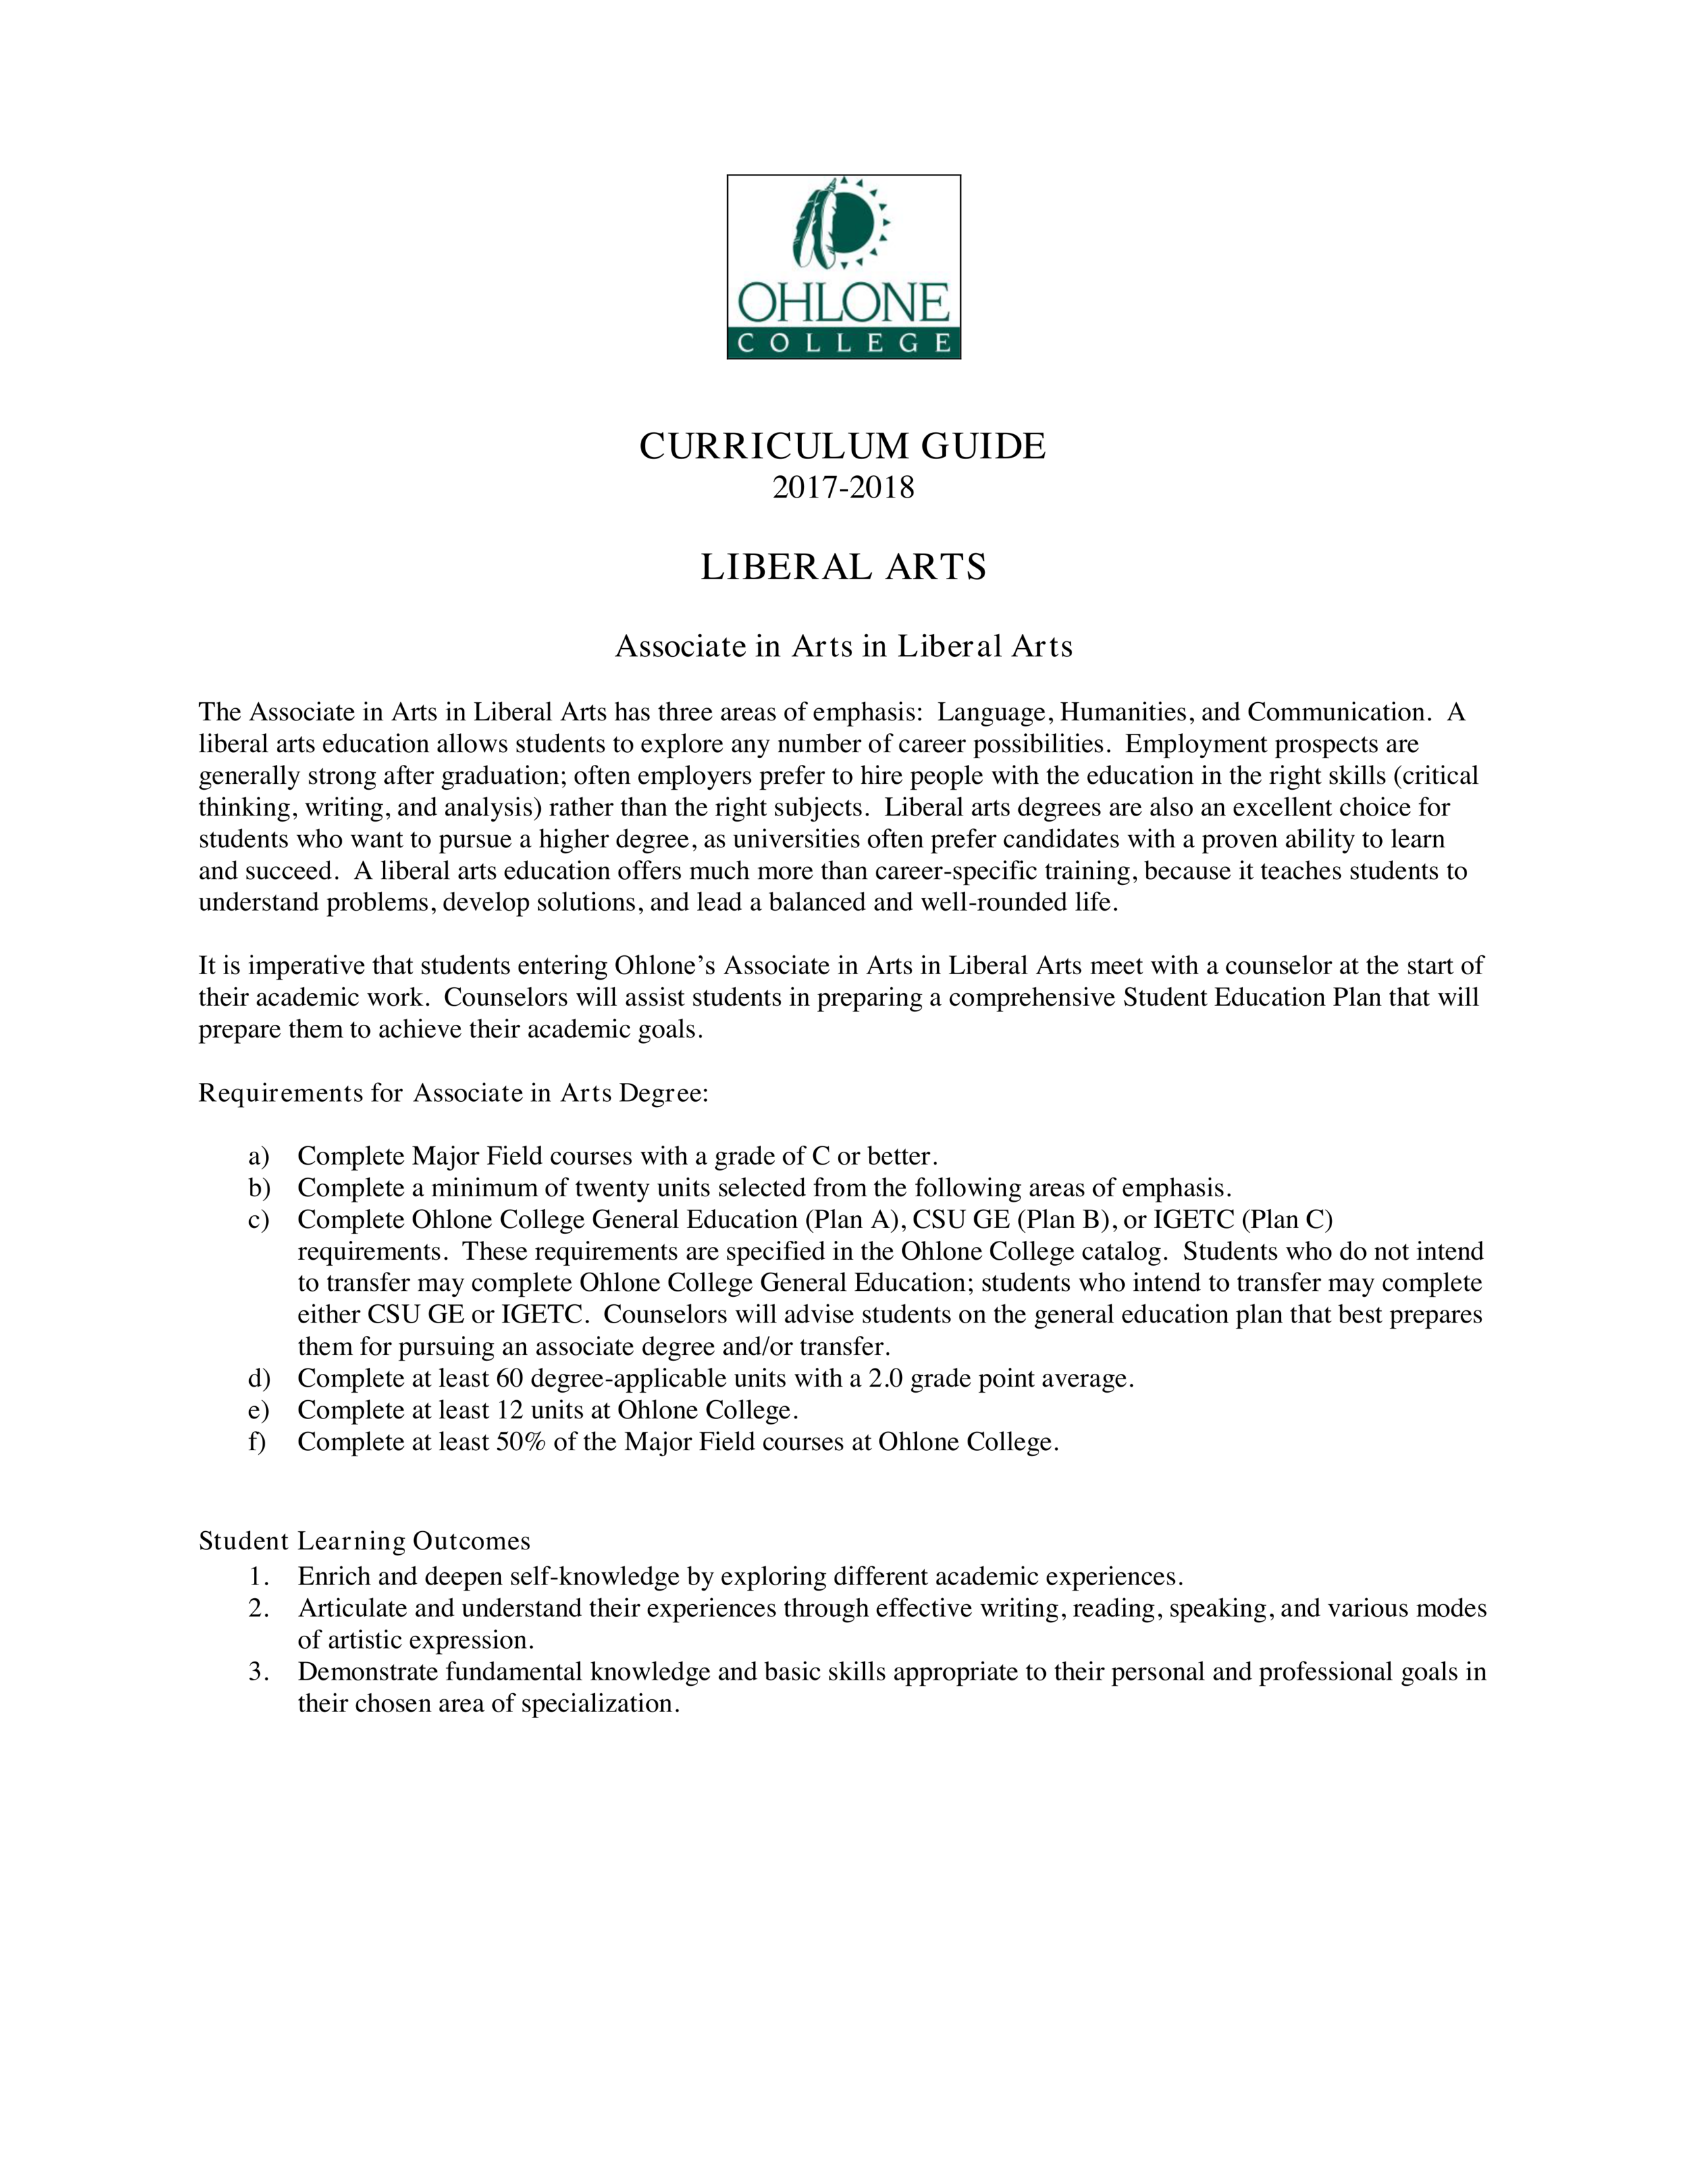 Curriculum Guide: Associate of Arts in Liberal Arts: Language Emphasis, Ohlone College, Fremont, CA, 2019 (1/4),  https://www.ohlone.edu/program/liberal-arts-language-emphasis , Accessed 10 May 2019